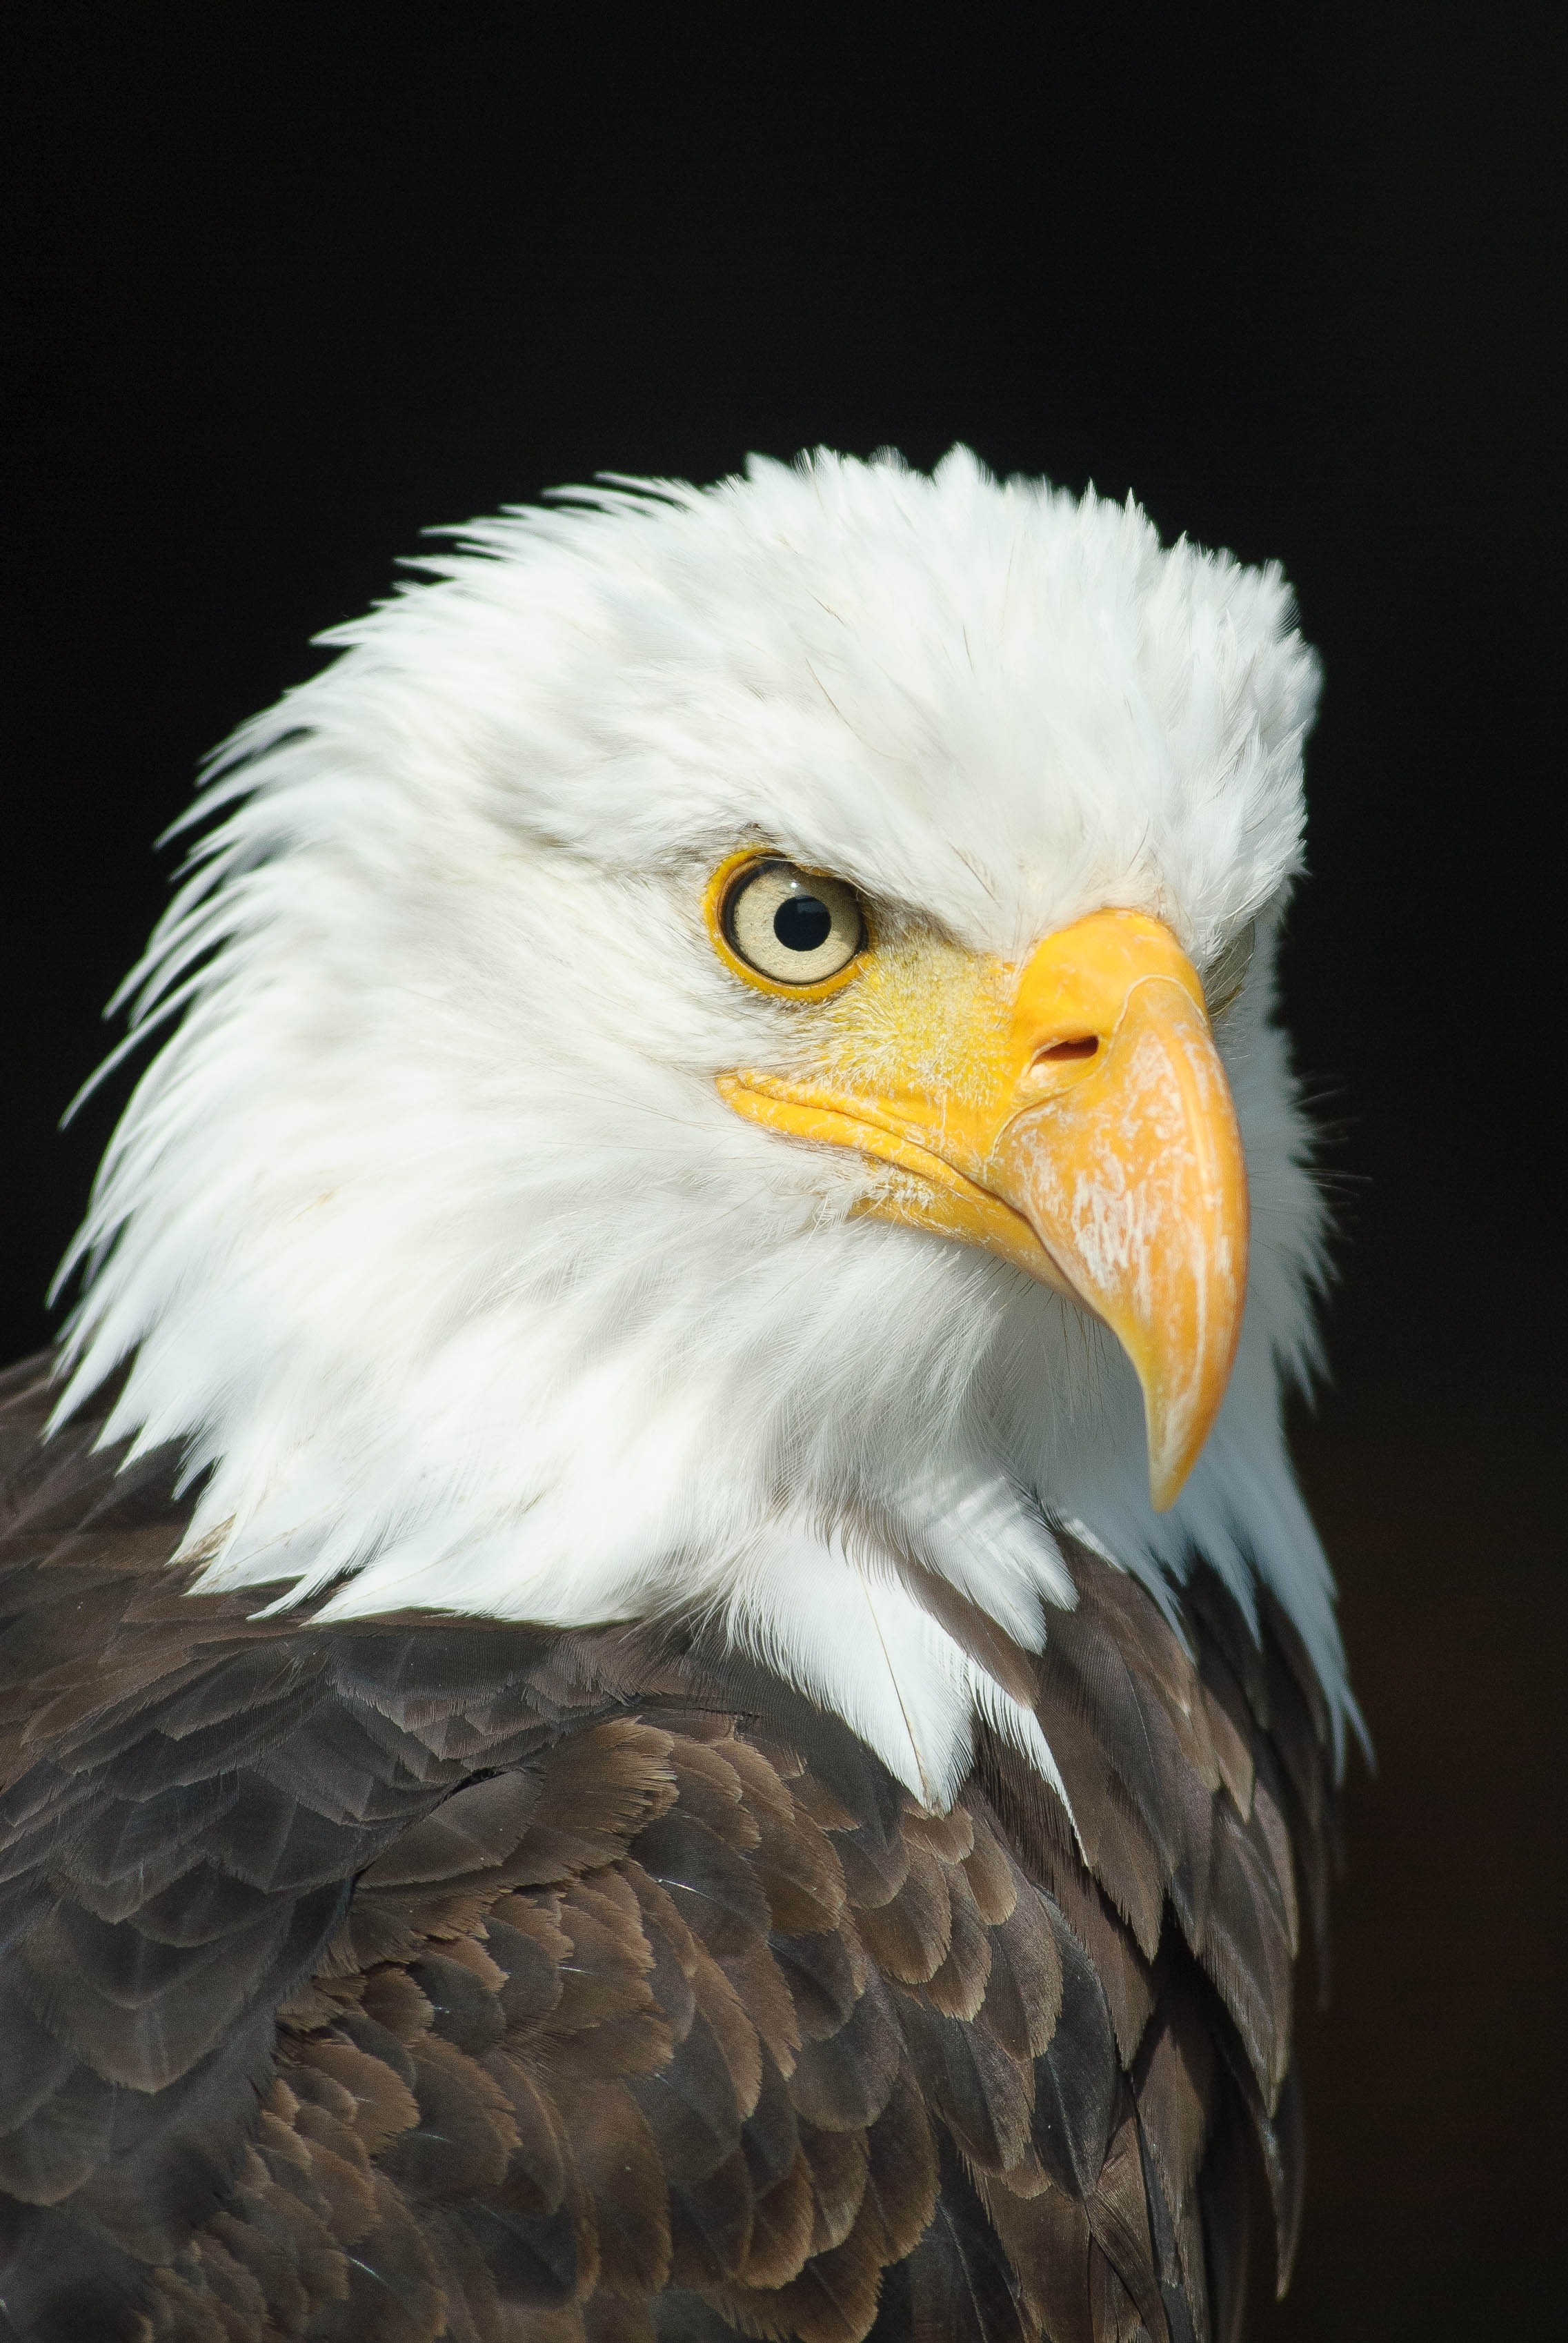 Eagle Images Pexels Free Stock Photos